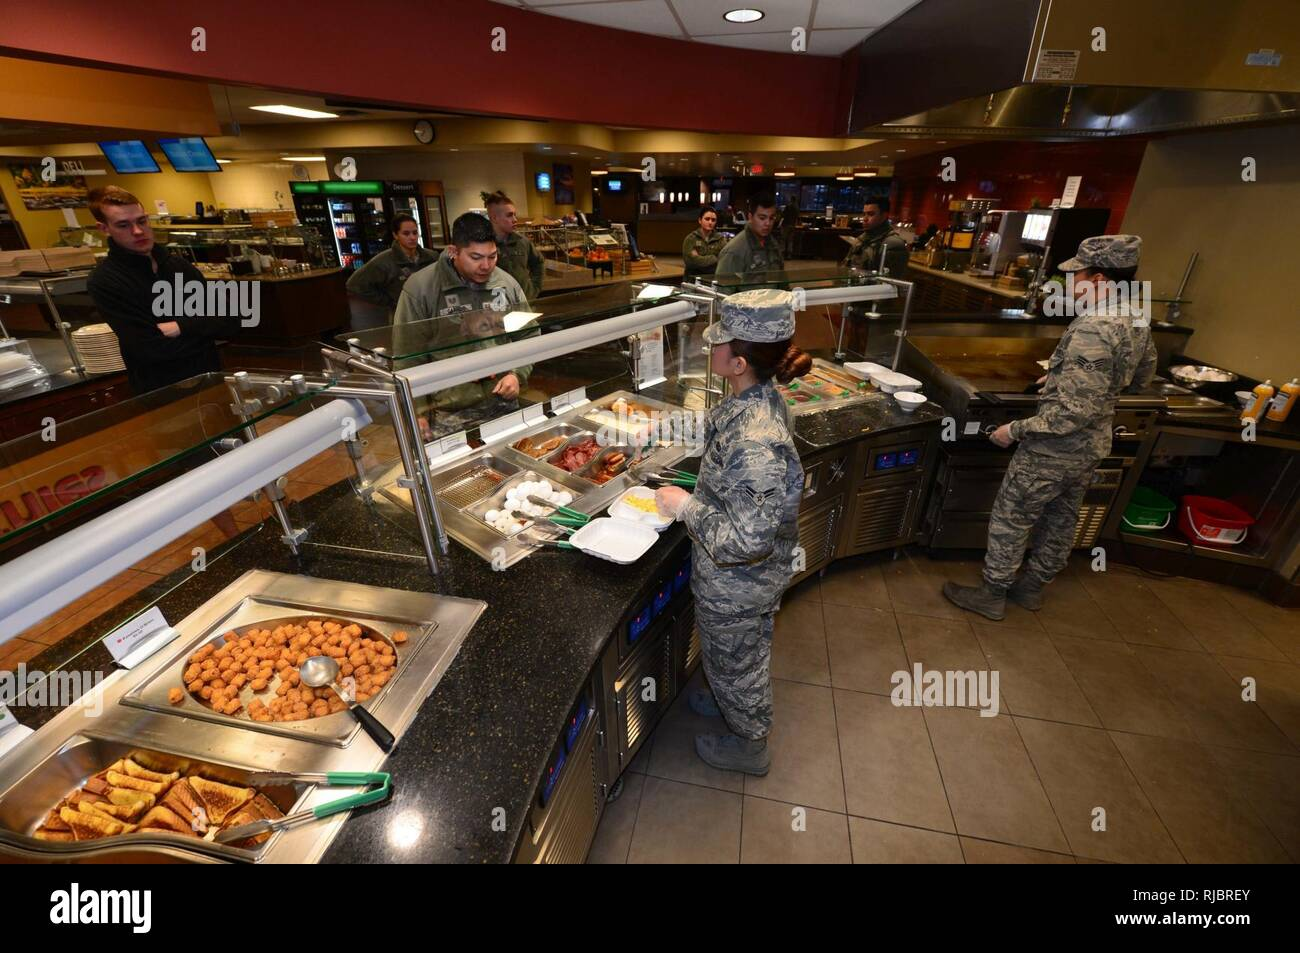 Personnel from the 28th Force Support Squadron serve customers breakfast inside the Raider Café at Ellsworth Air Force Base, S.D., Jan. 12, 2018. Having won the Hennessey award several times in the past, an award recognizing the best dining facilities in the Air Force, food service personnel of the 28th FSS gear up to compete in this year's competition. Stock Photo